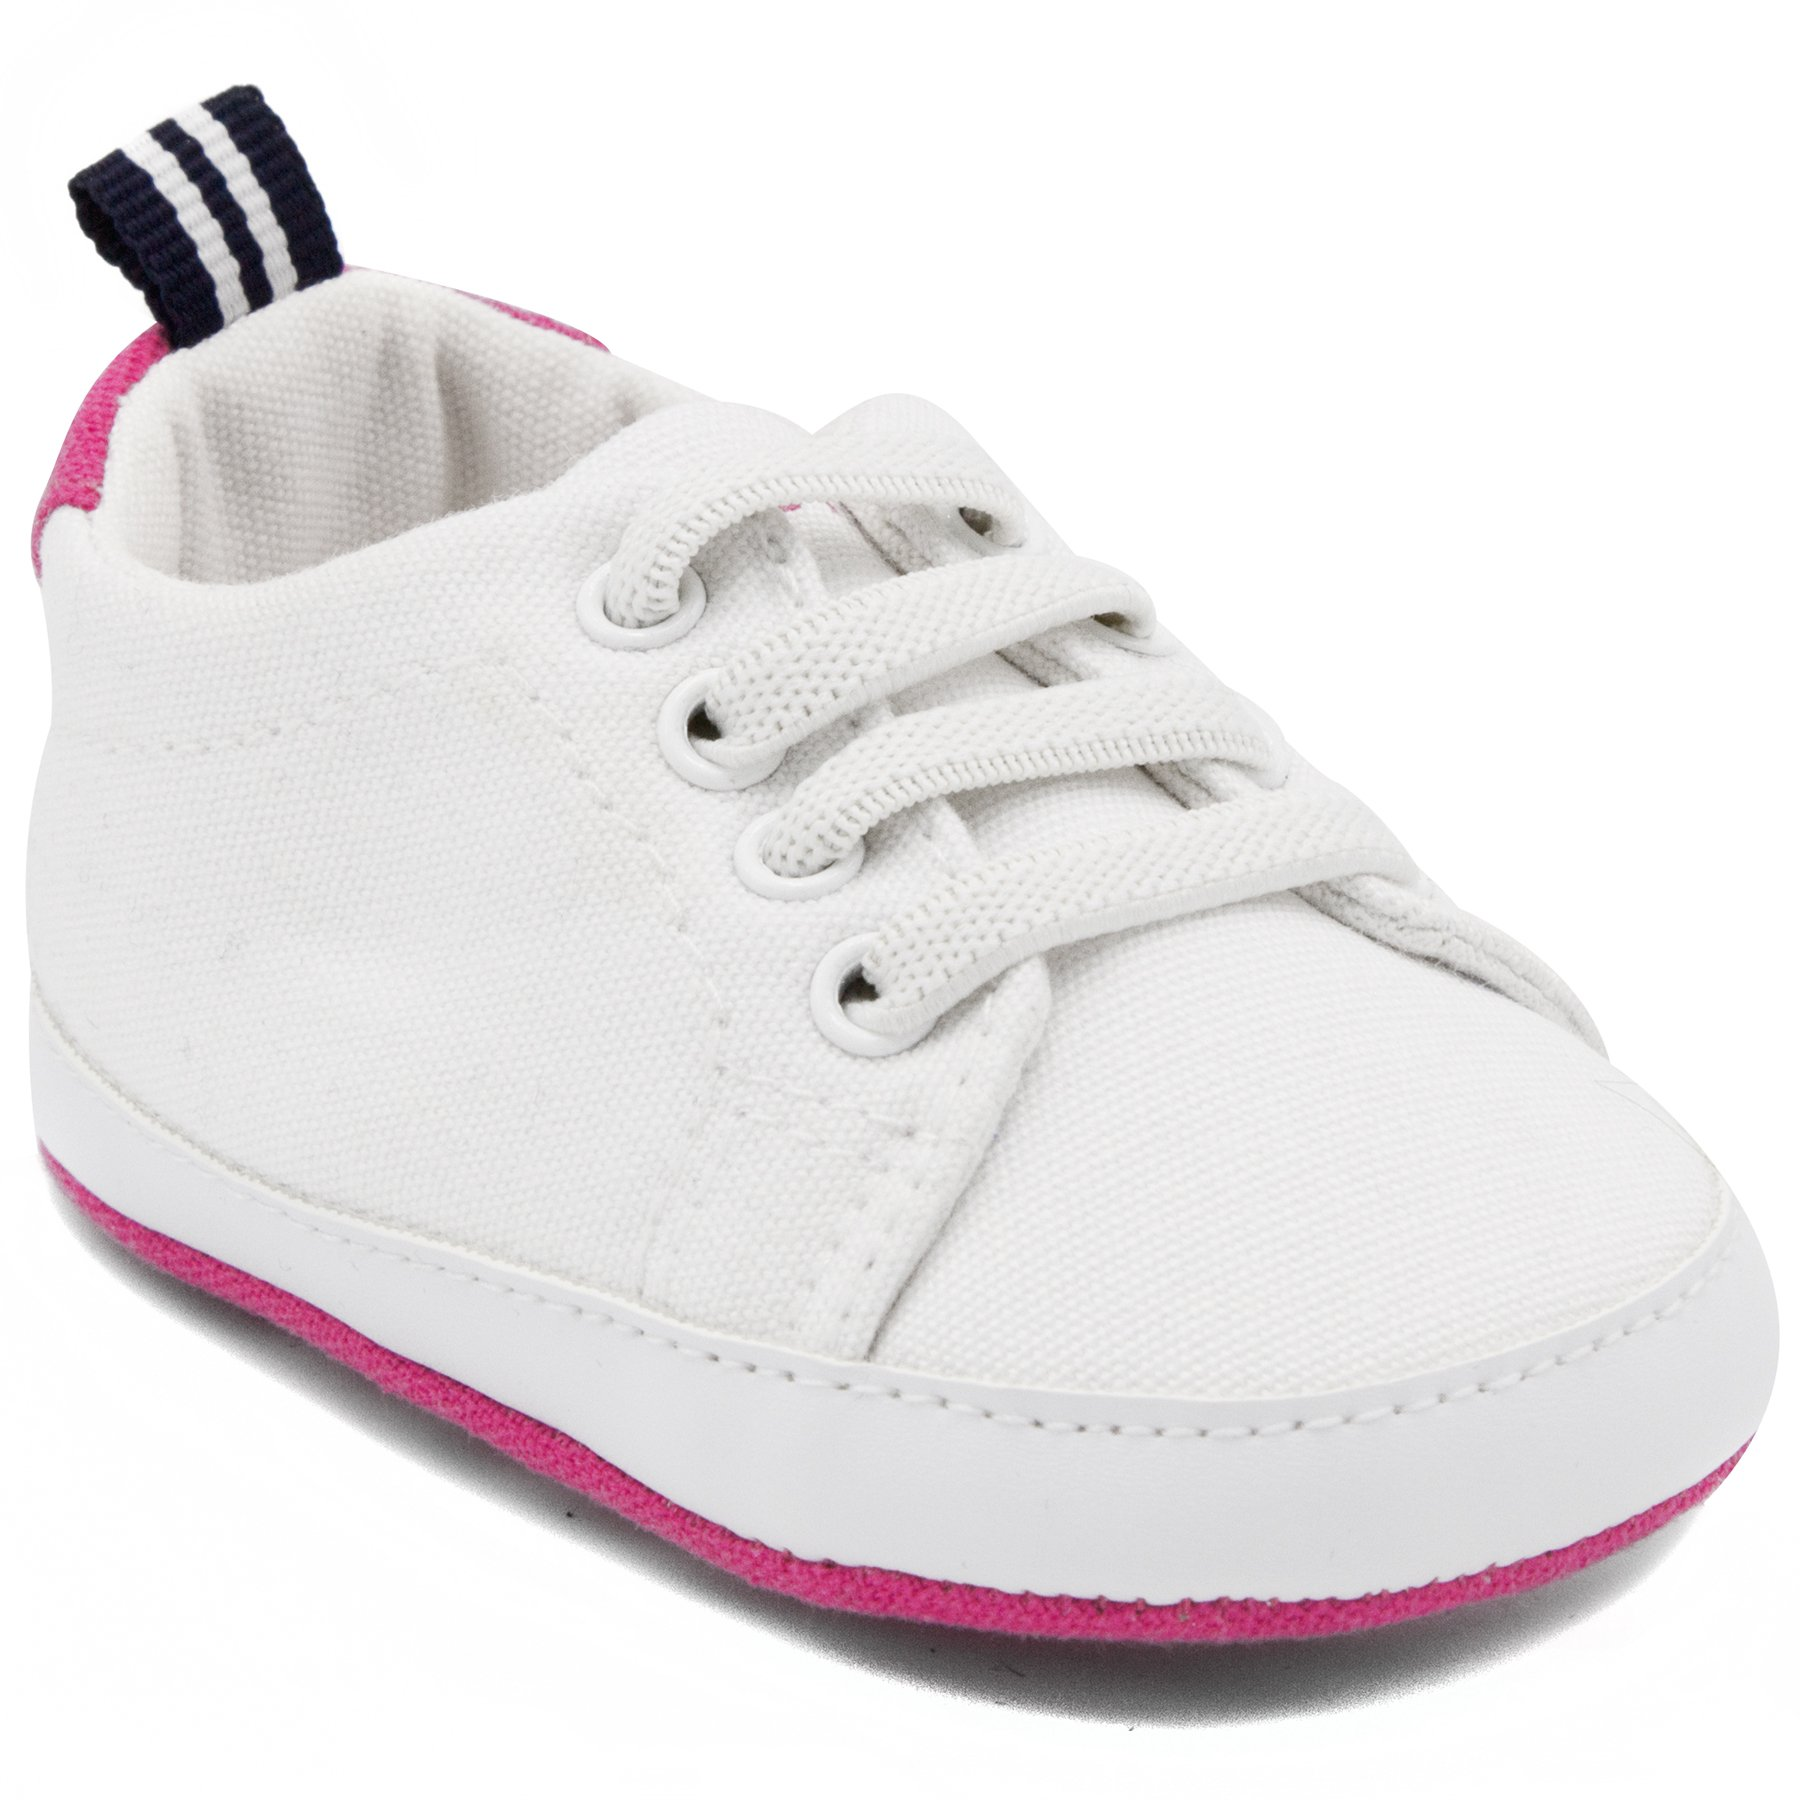 Nautica Comber, Baby Girl Prewalker, Crib Sneakers, Soft Sole Shoes-White/Pink-1